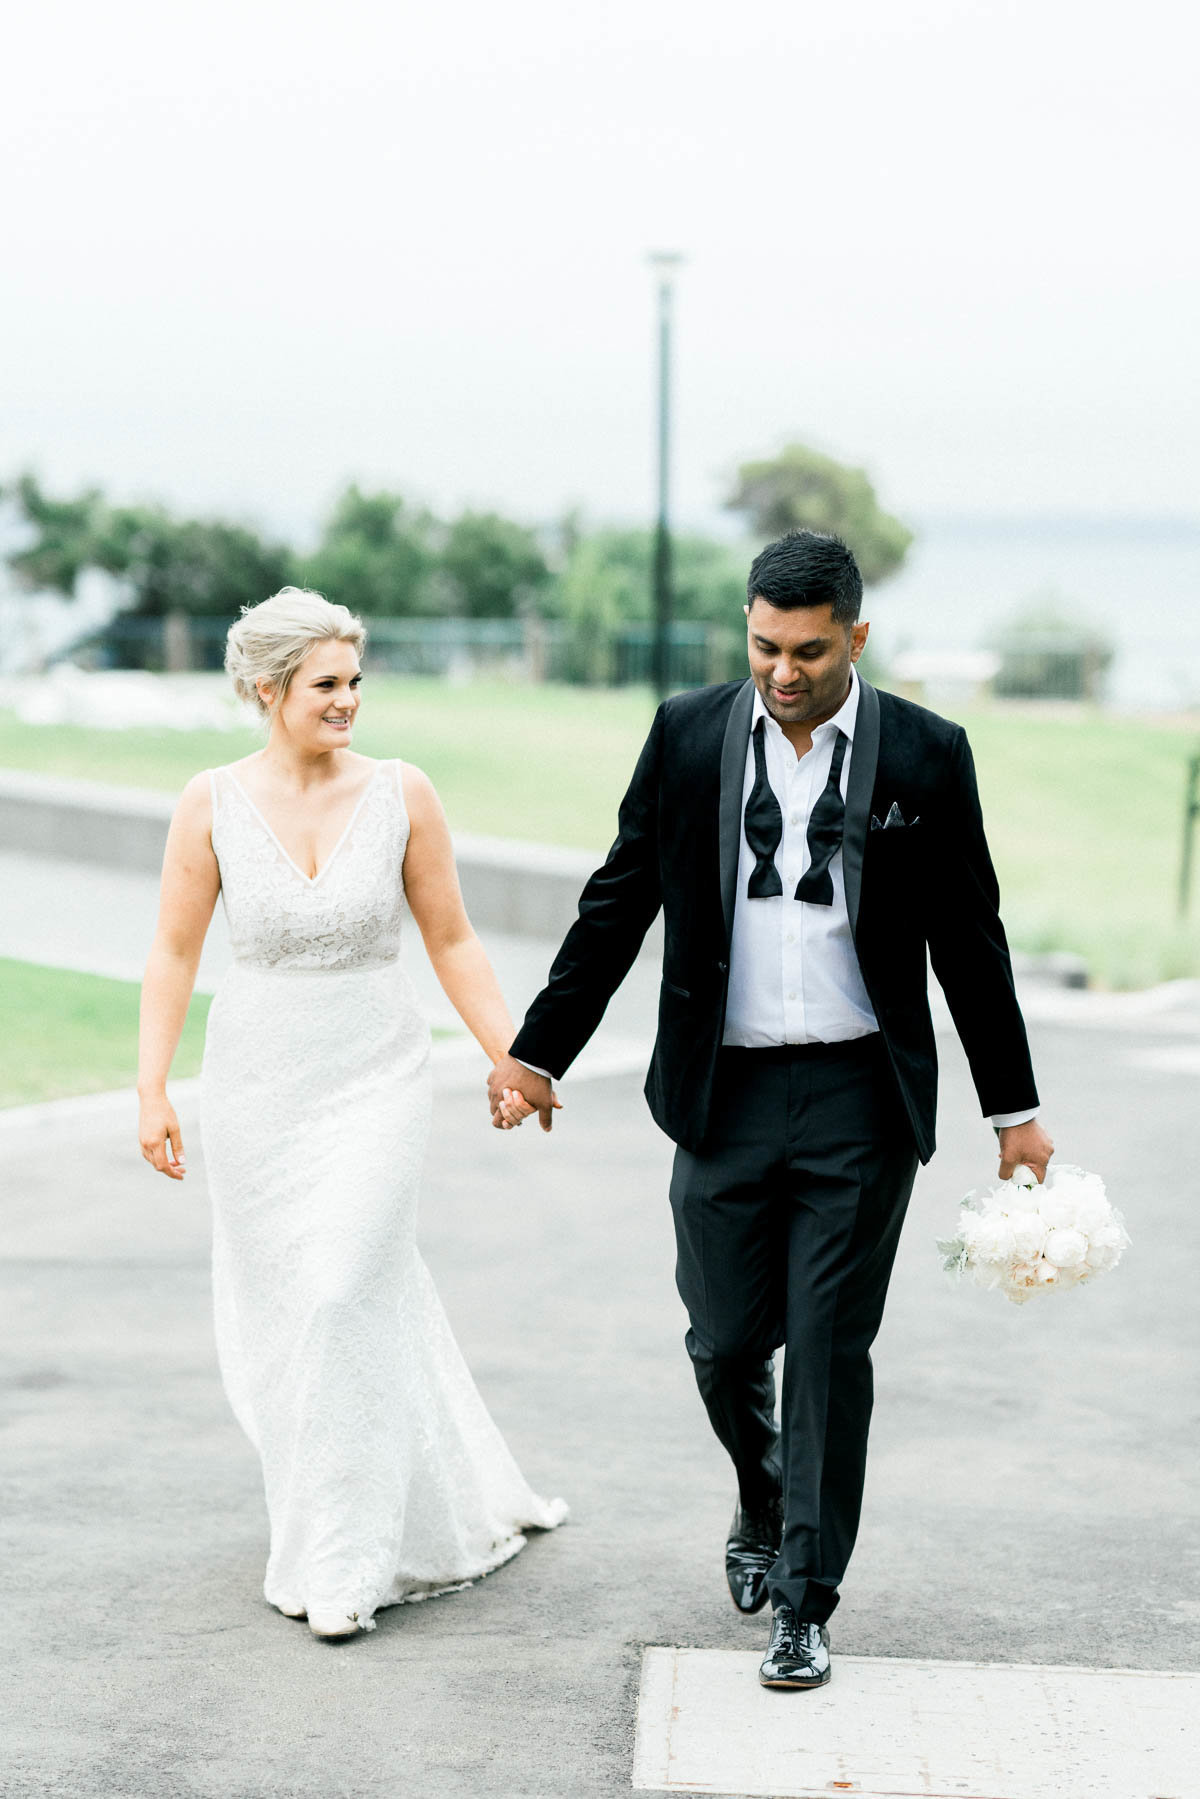 trenavin-chapel-phillip-island-wedding-heart+soul-weddings-sally-sean-01820